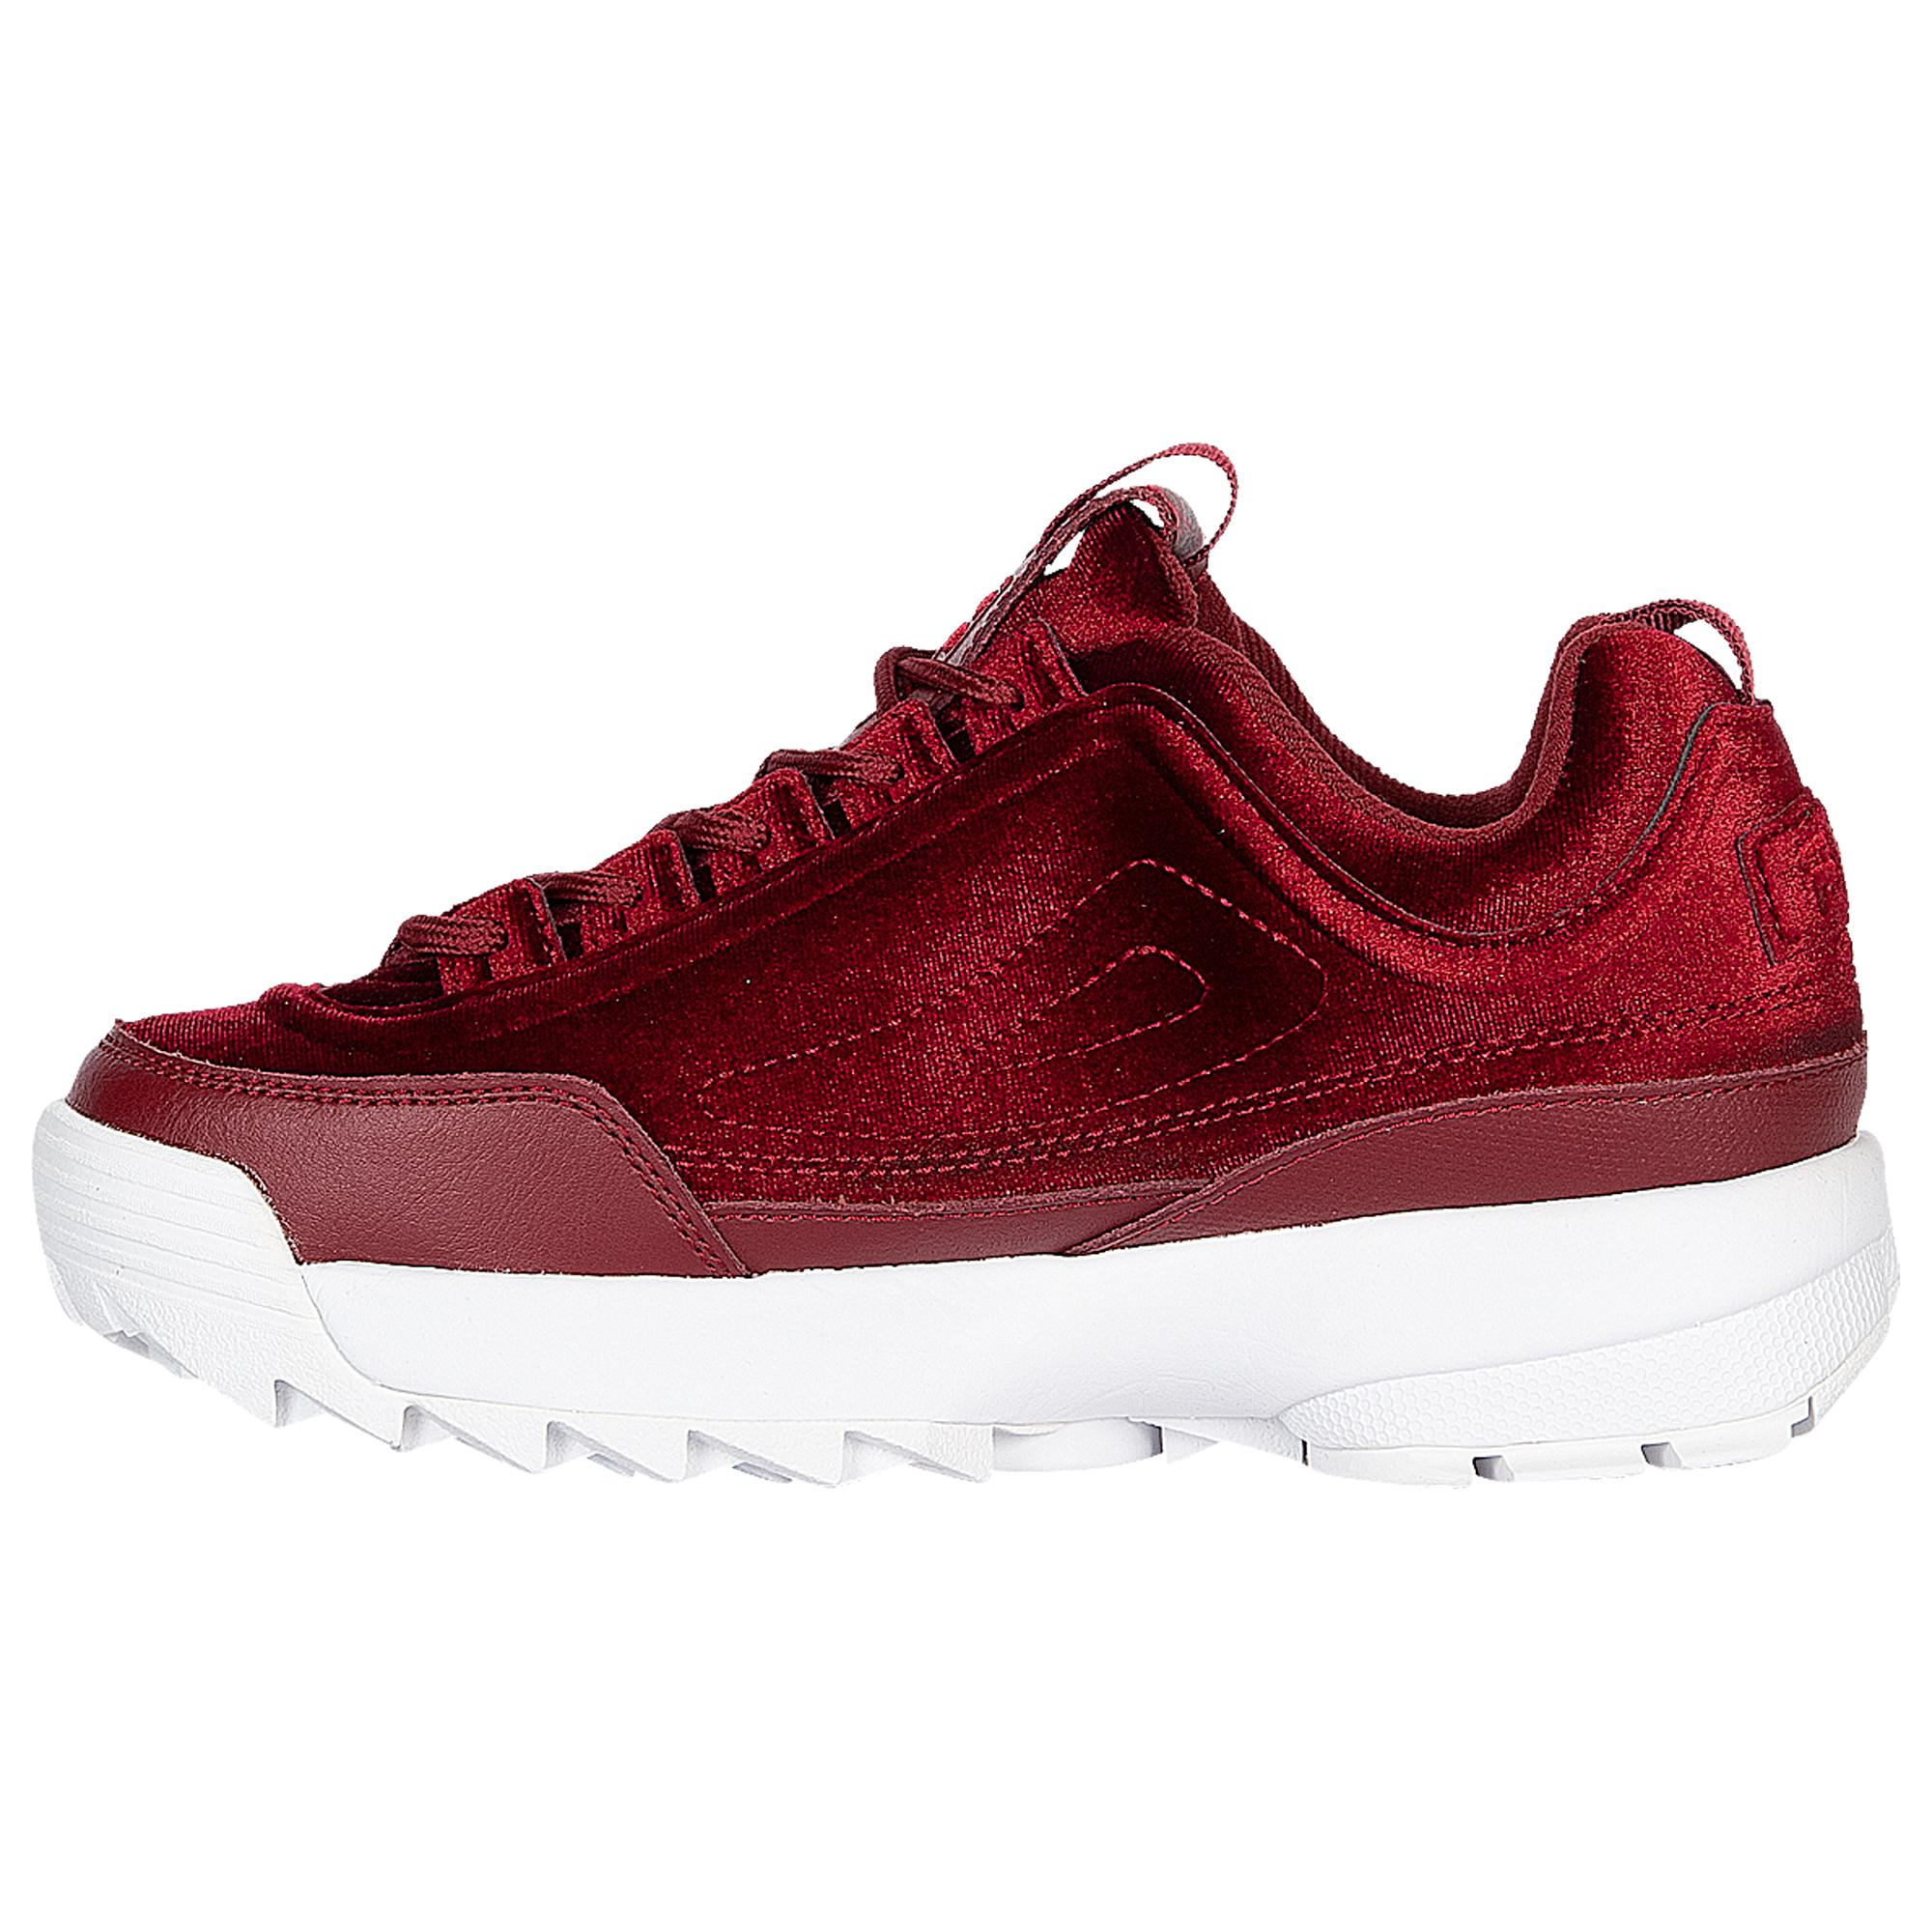 better attractive & durable variety of designs and colors Disruptor Velvet Training Shoes